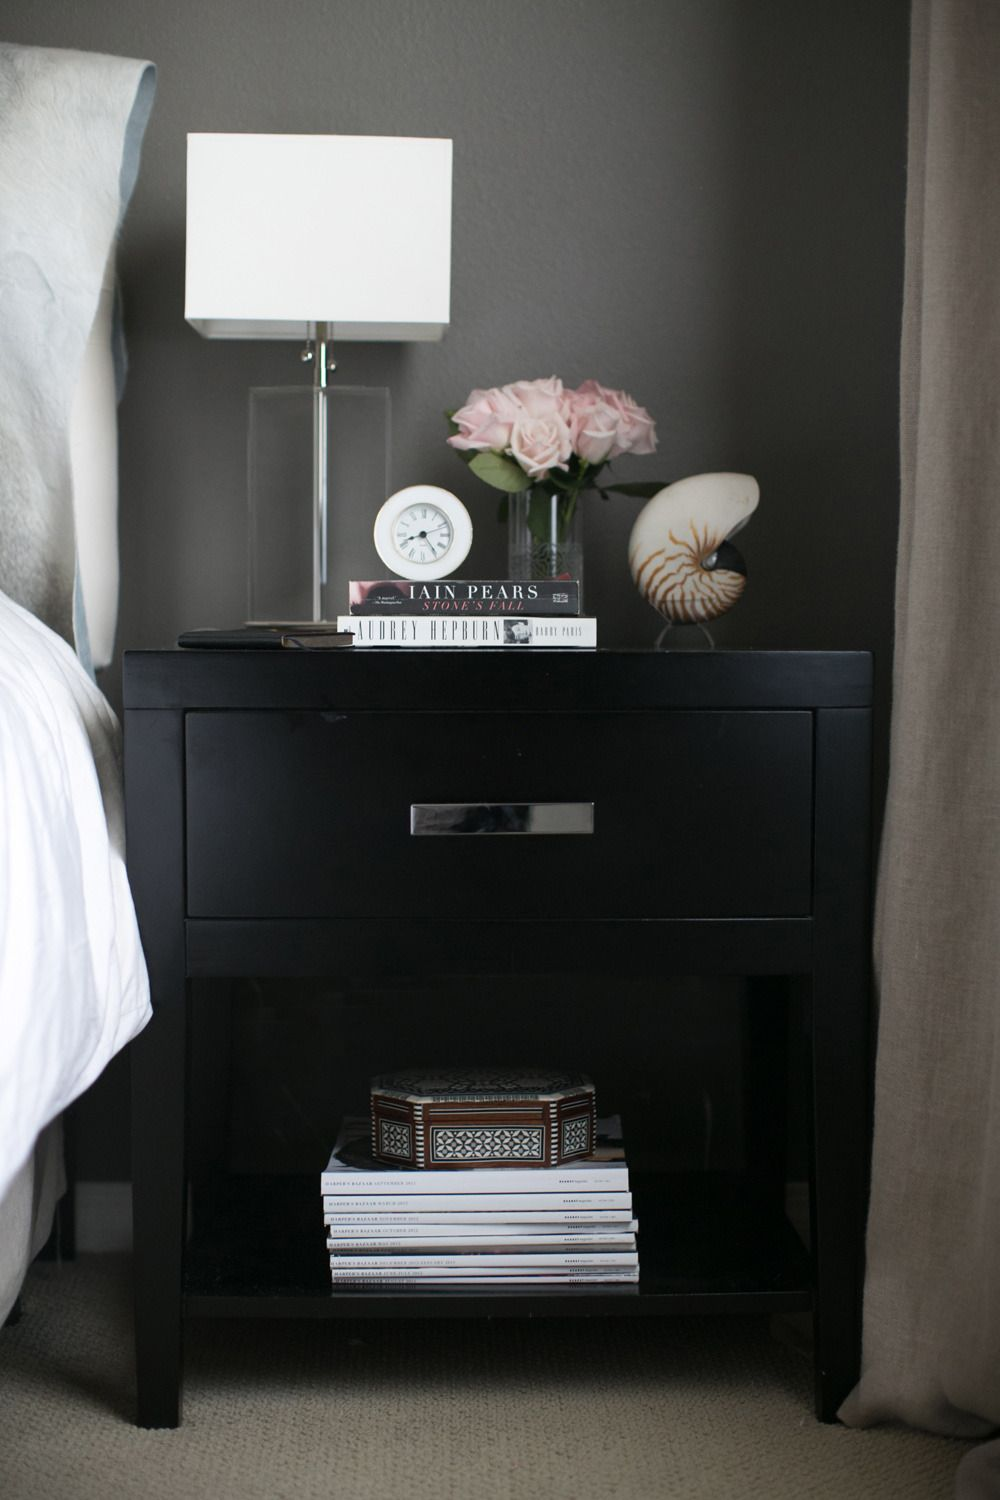 Chic Edgy Home Of Small Shop Side Tables Bedroom Bedroom End Tables Nightstand Decor